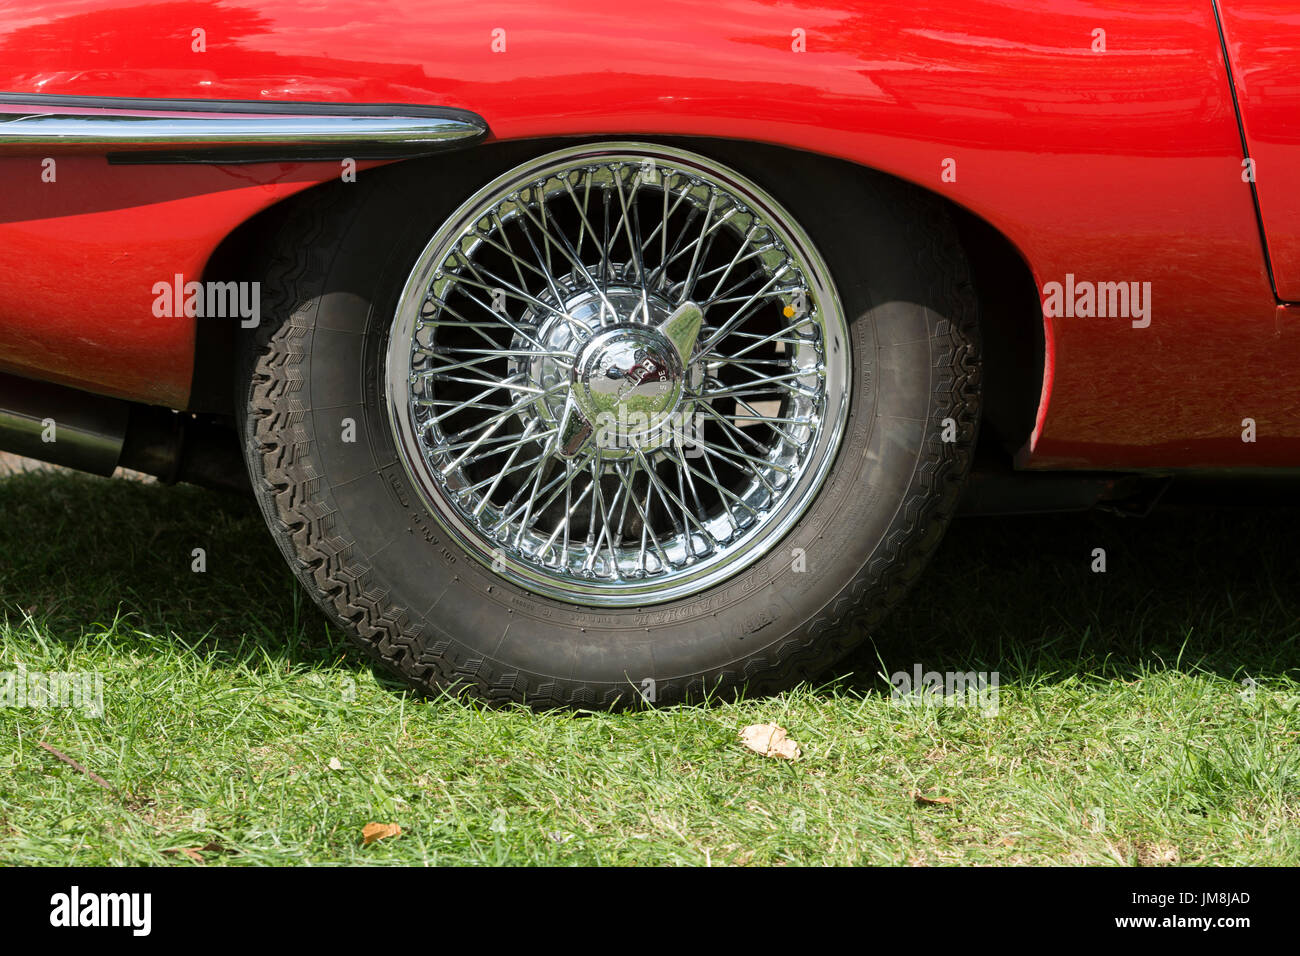 Wire Wheels Stock Photos & Wire Wheels Stock Images - Alamy